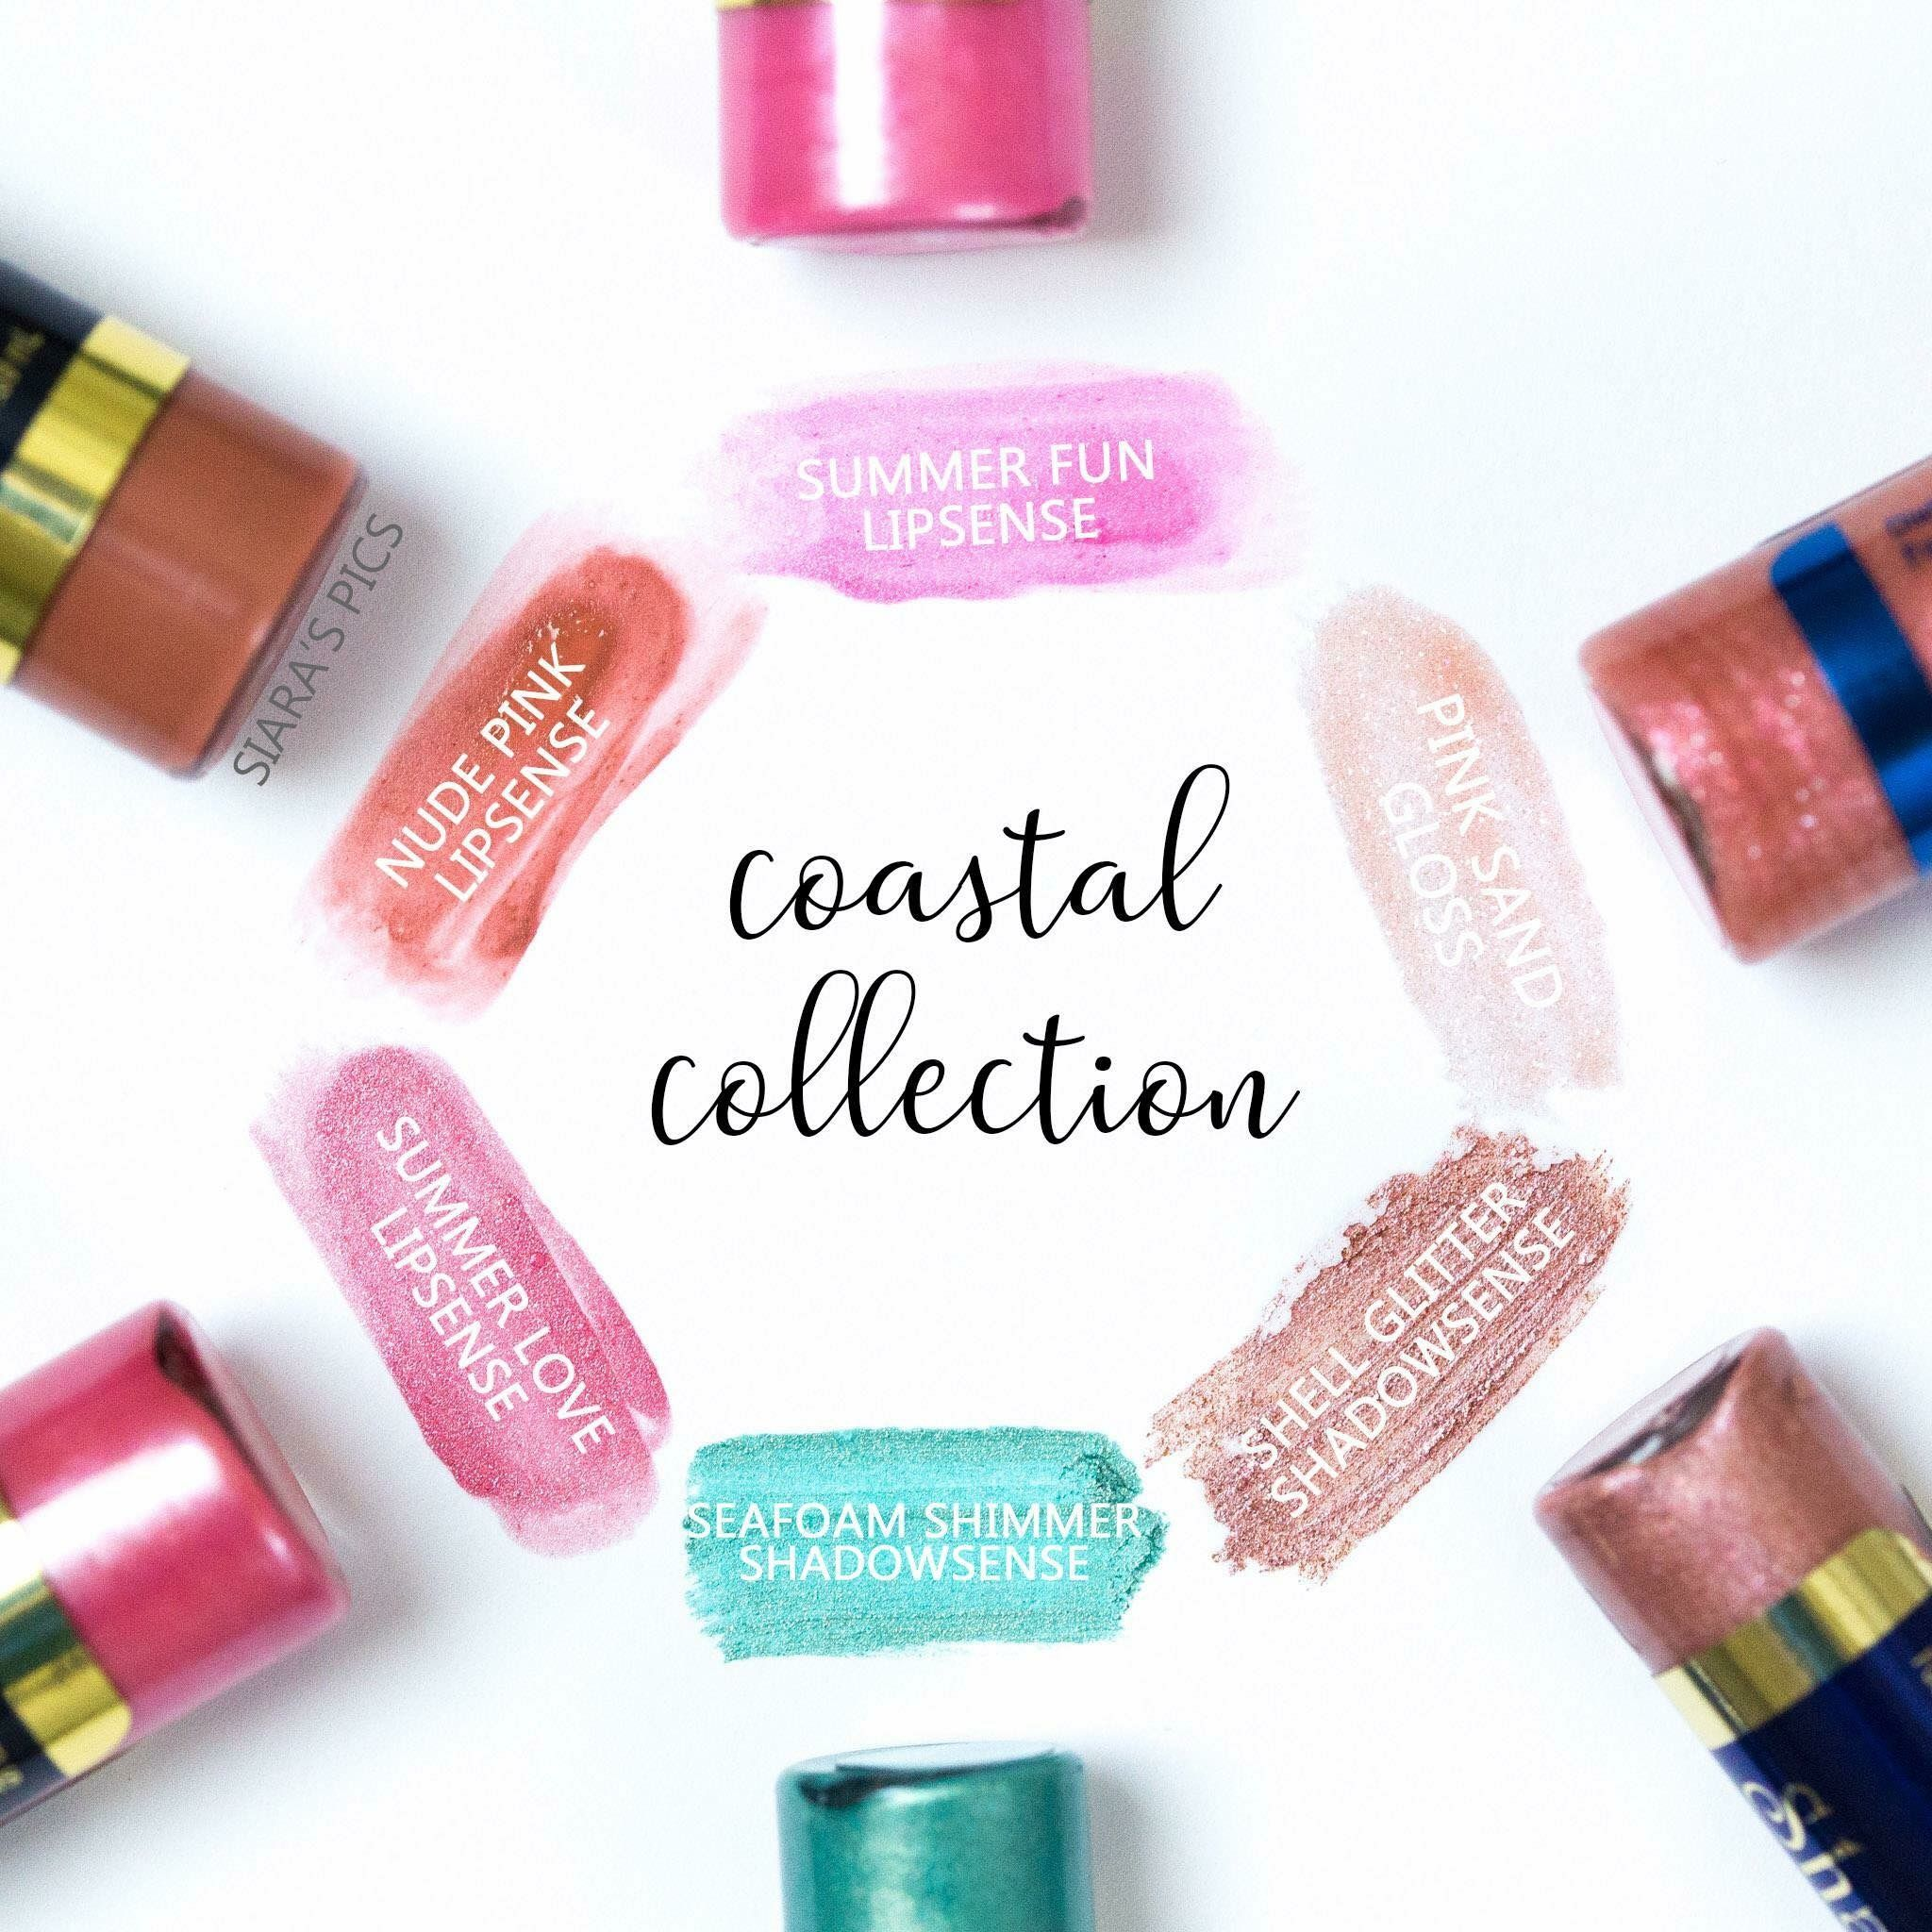 Lipsense Coastal Collection By Senegence Is Perfect For The Summer